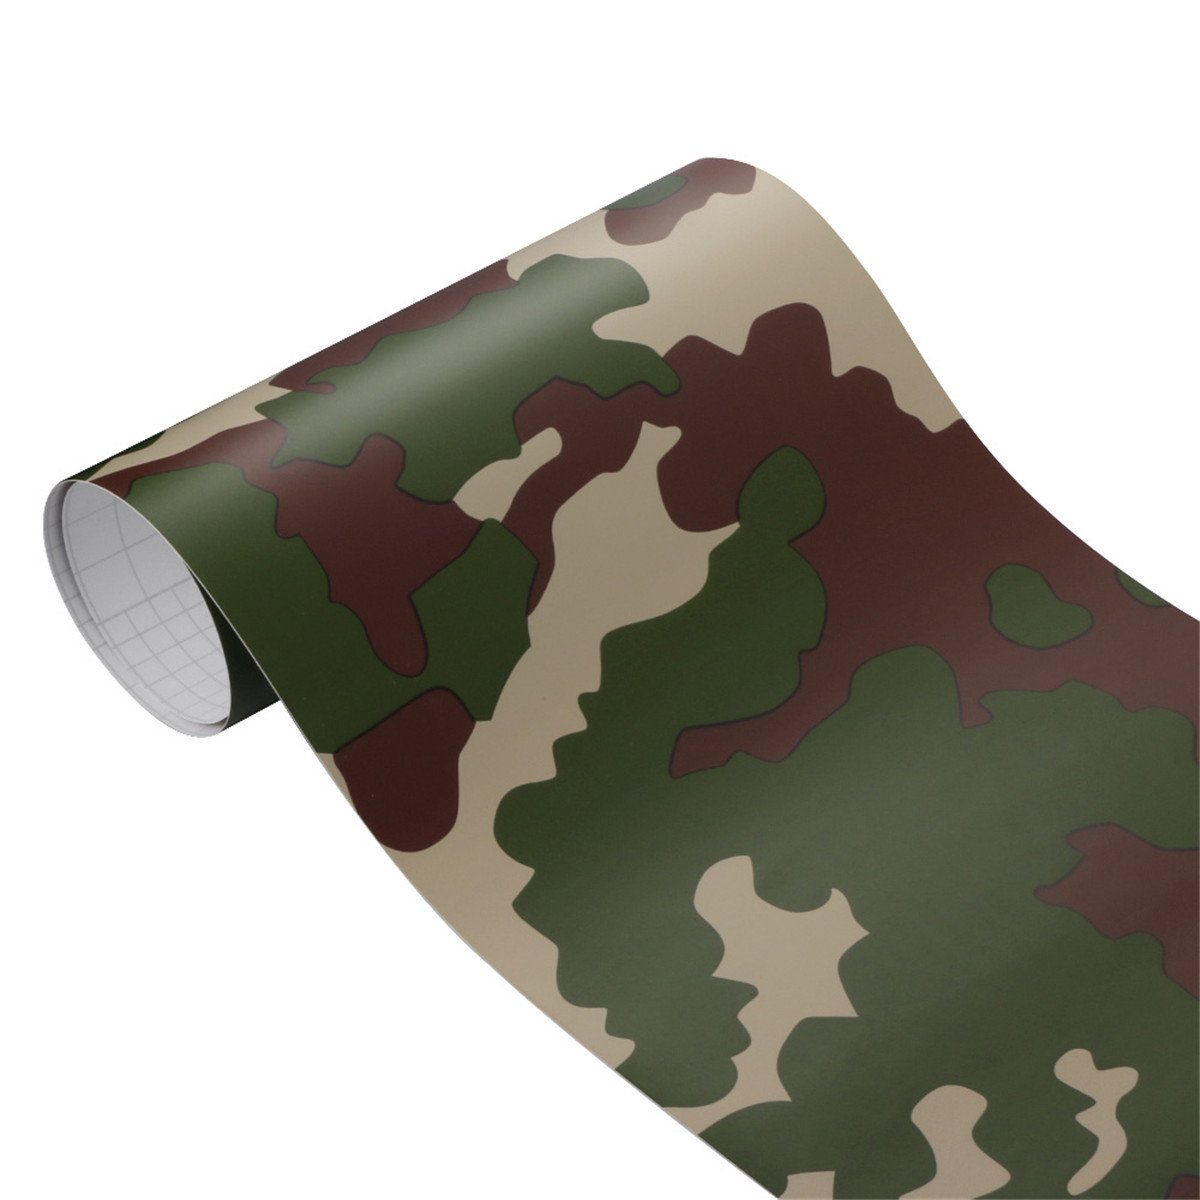 Lkxharleya car camouflage pvc wrap stickers army military green camo desert decal for auto motorcycle 10030cm amazon co uk kitchen home